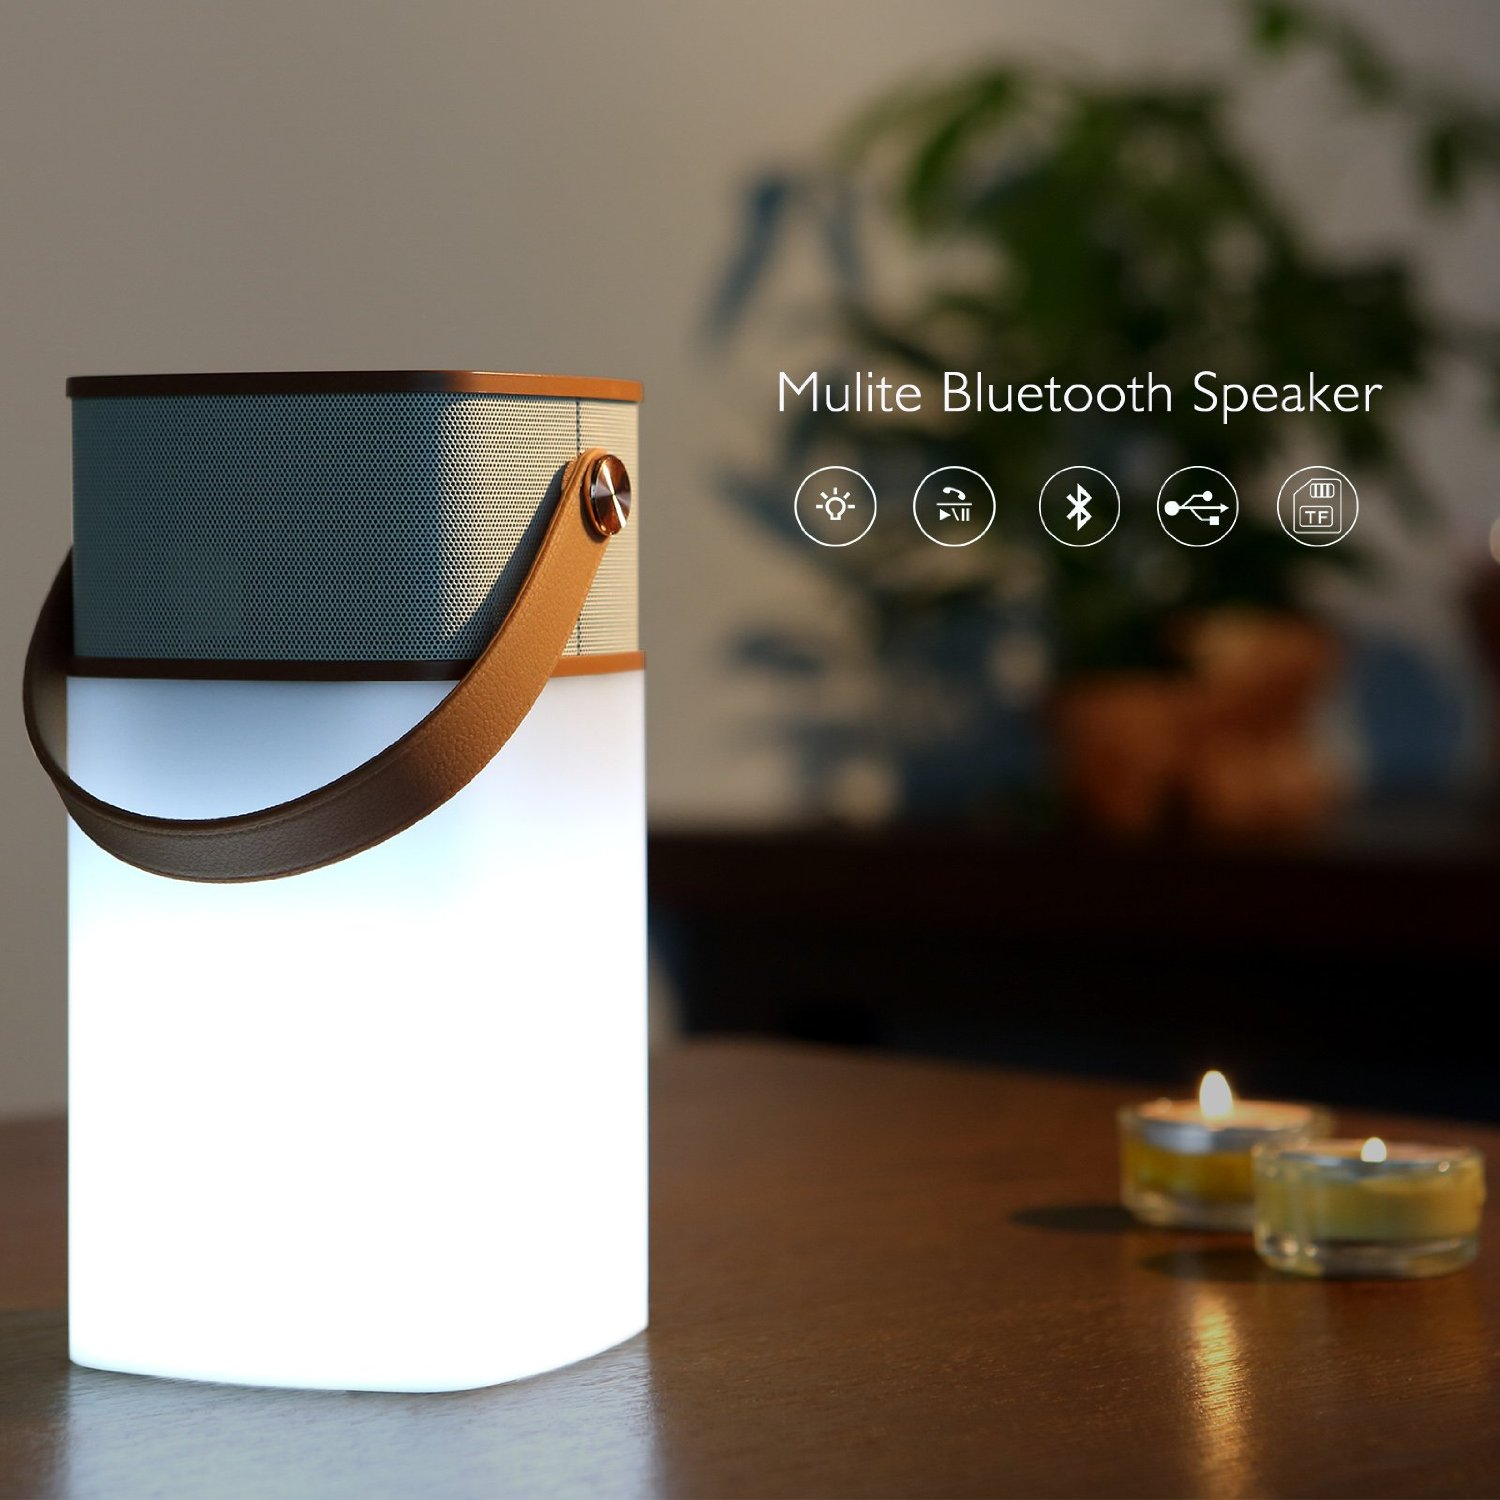 Mulite Bluetooth Speaker by ROCK